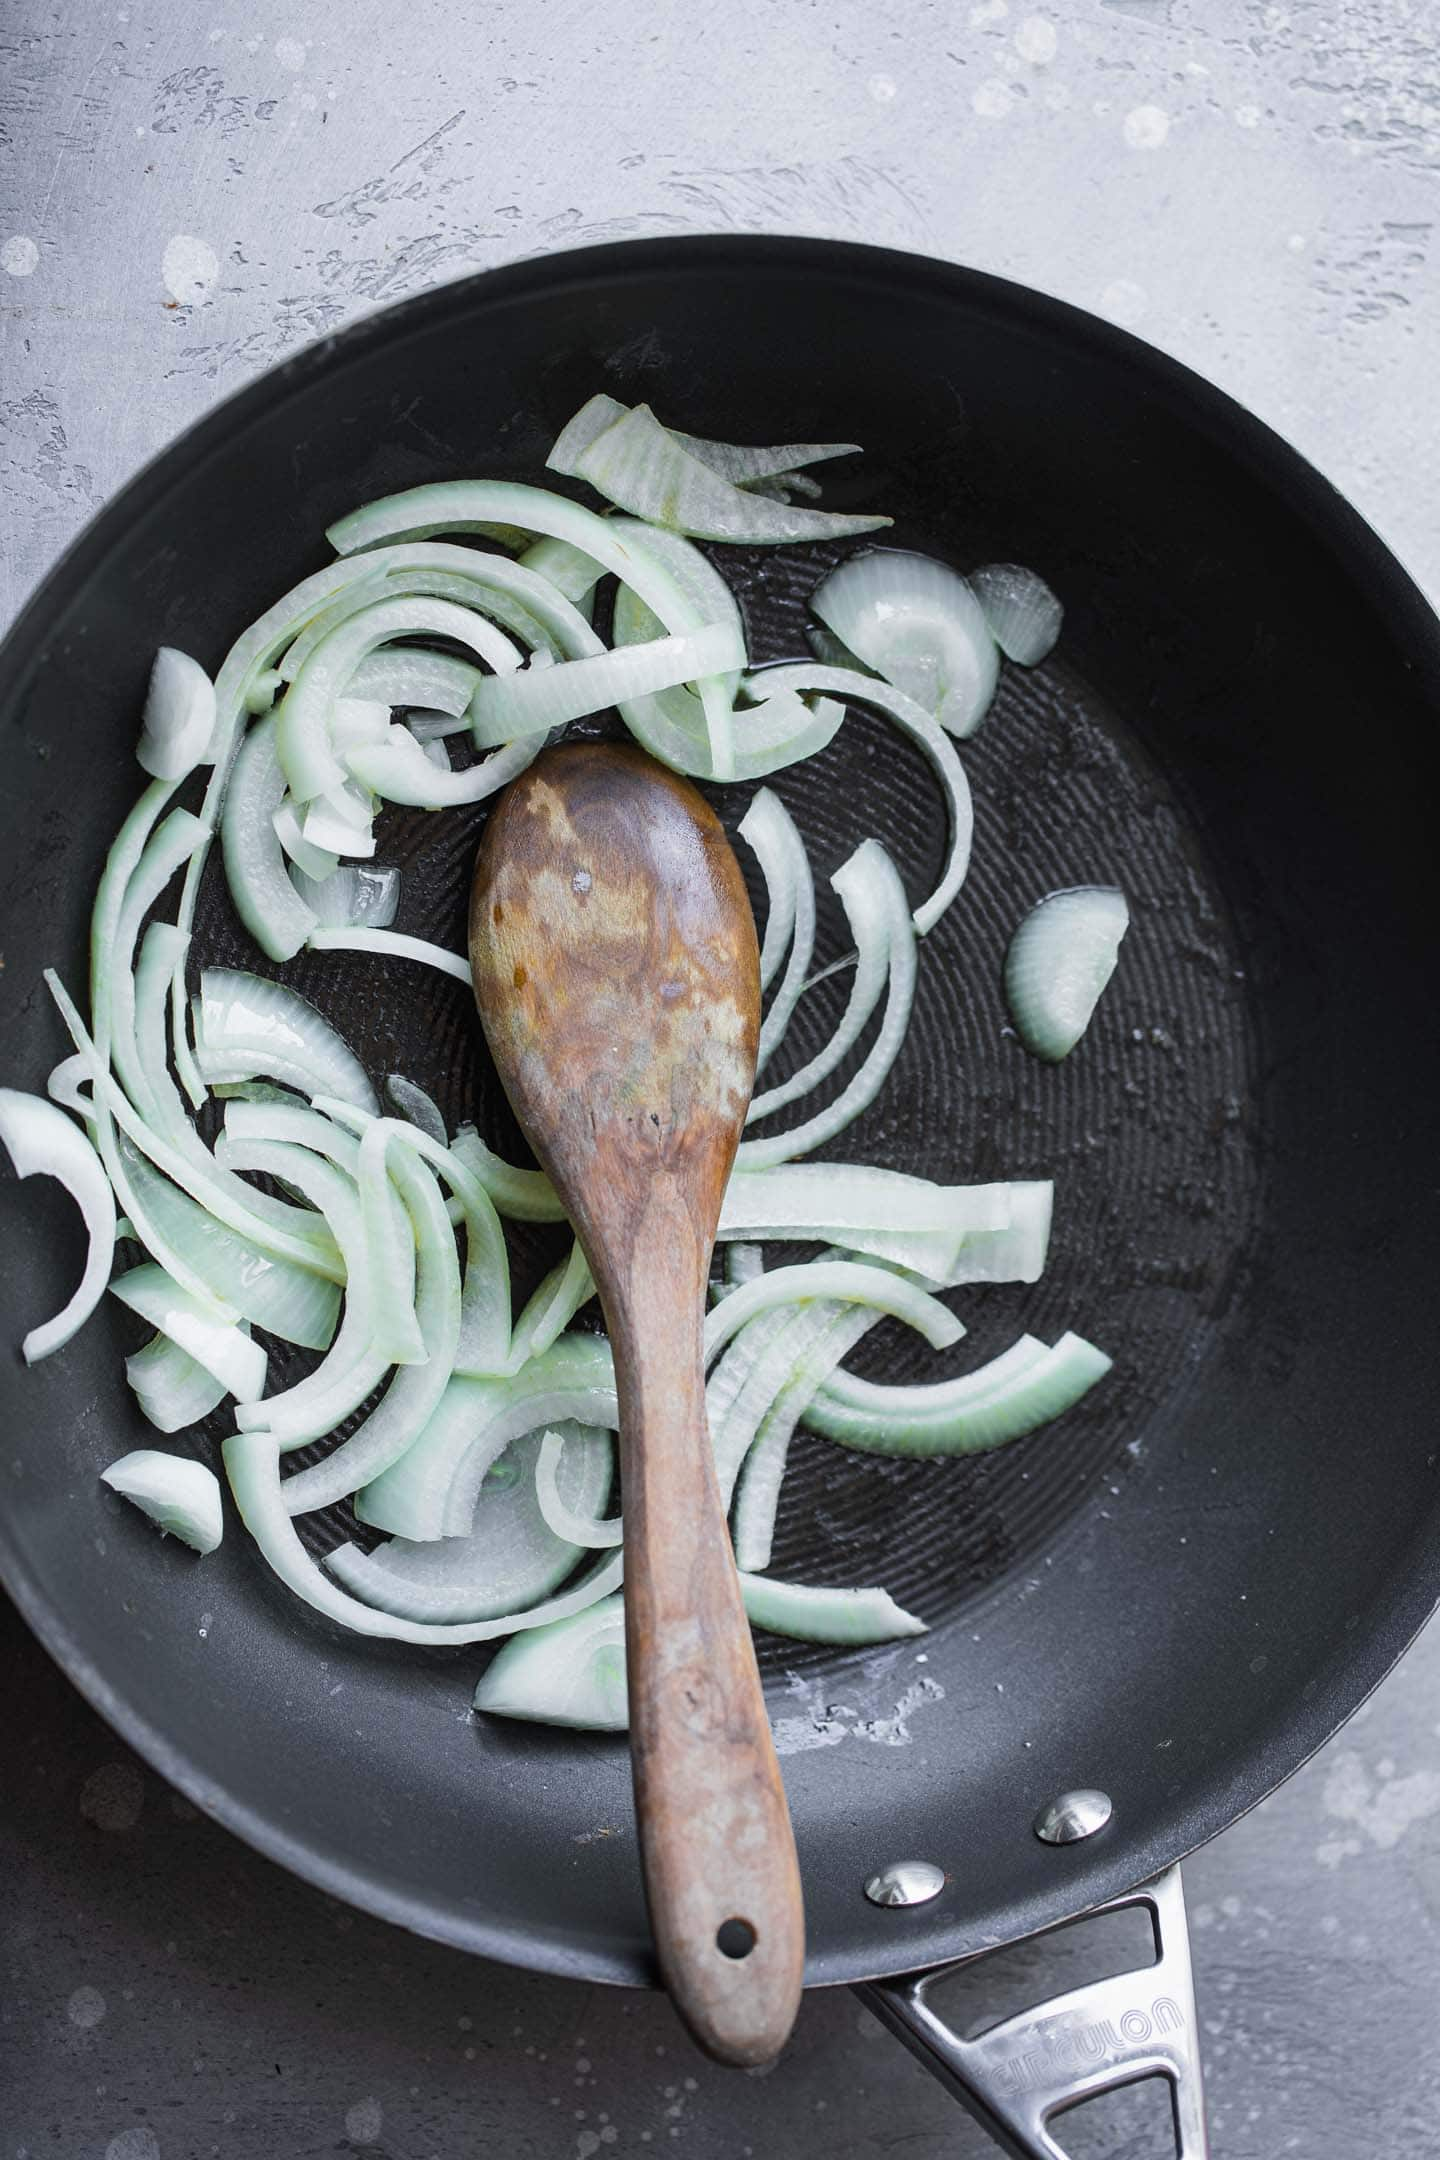 Onions in a frying pan